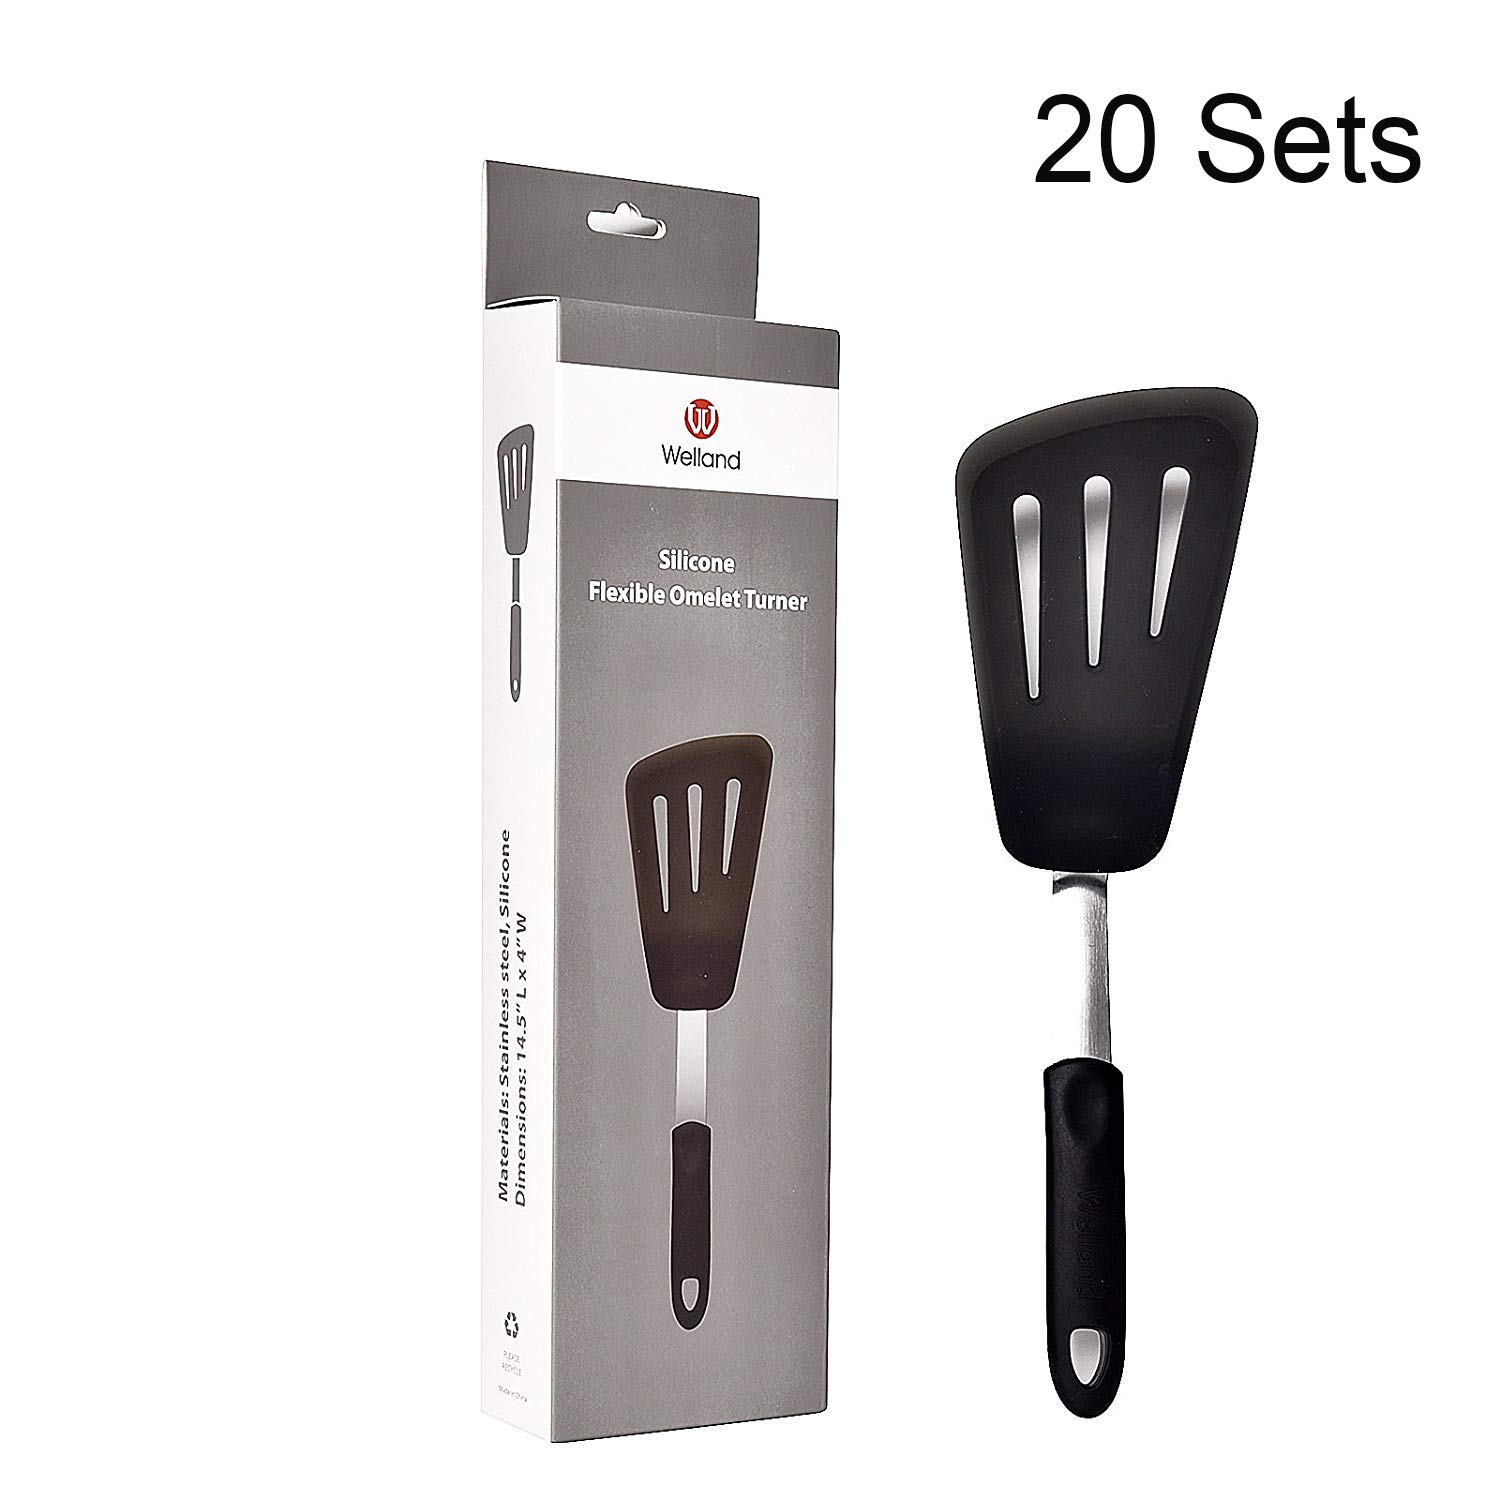 WELLAND Clearance Sale !!! Silicone & Stainless Steel Omelet Spatula Turner 600°F Heat-Resistant Flexible long Turner, 20 Sets